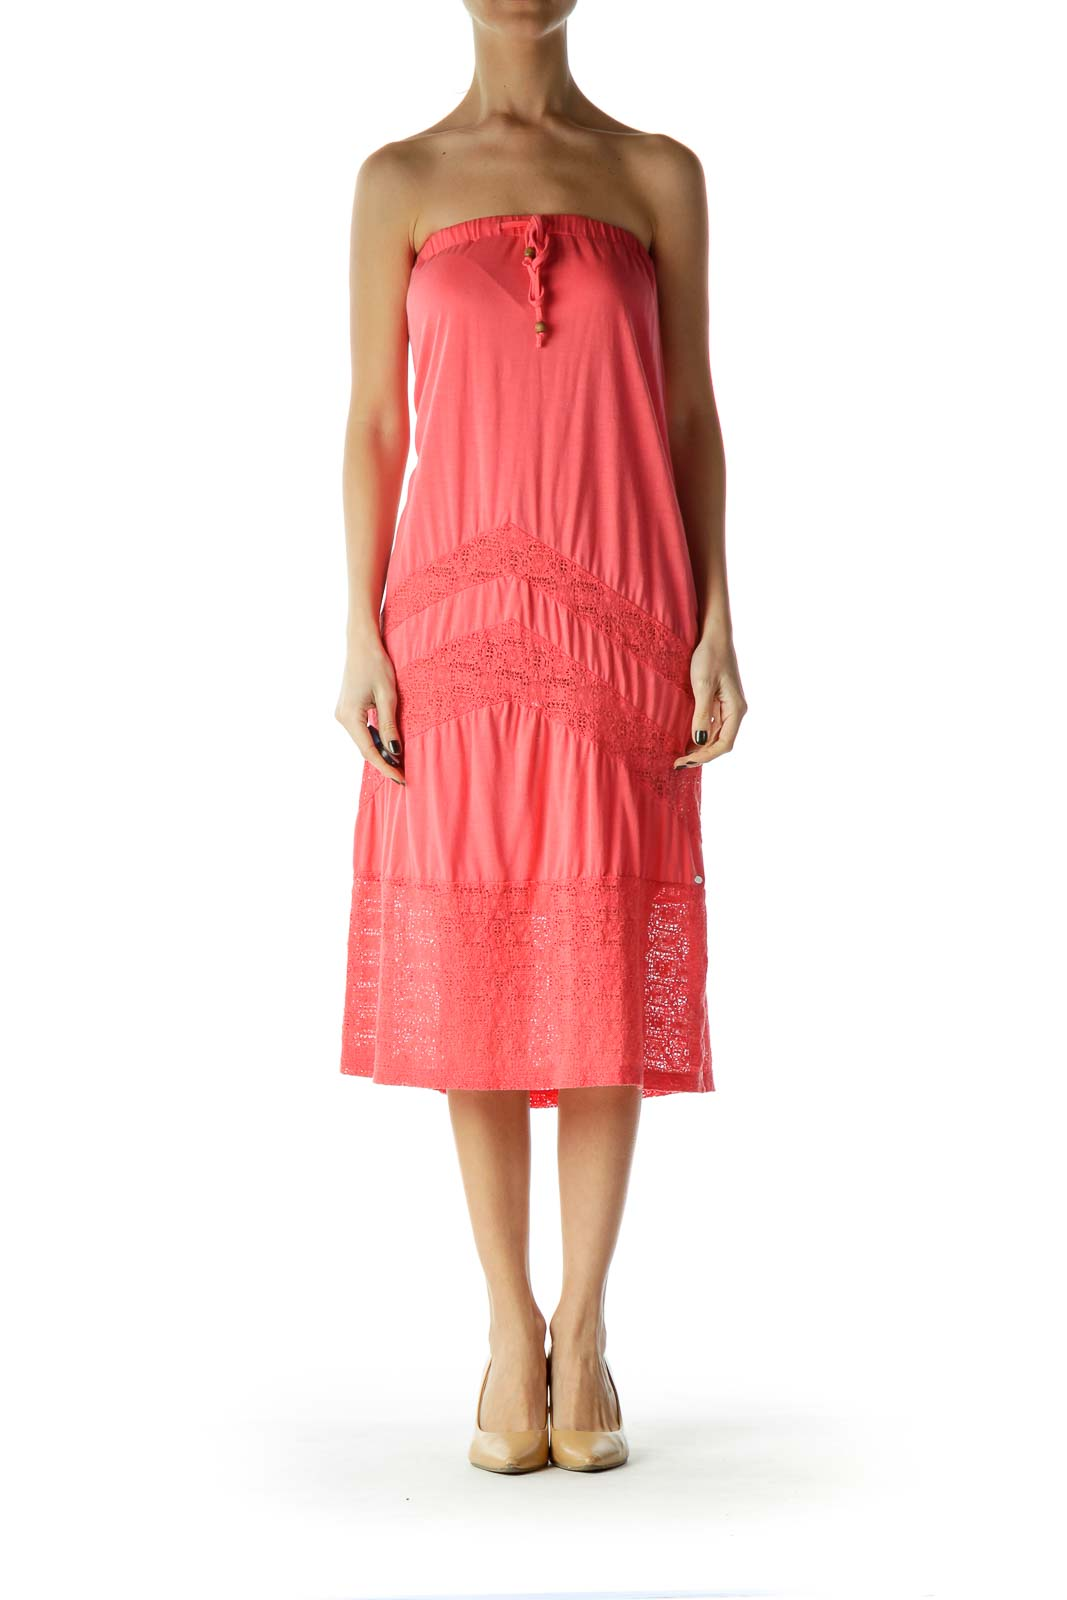 Pink Strapless Jersey Dress with Lace Detail